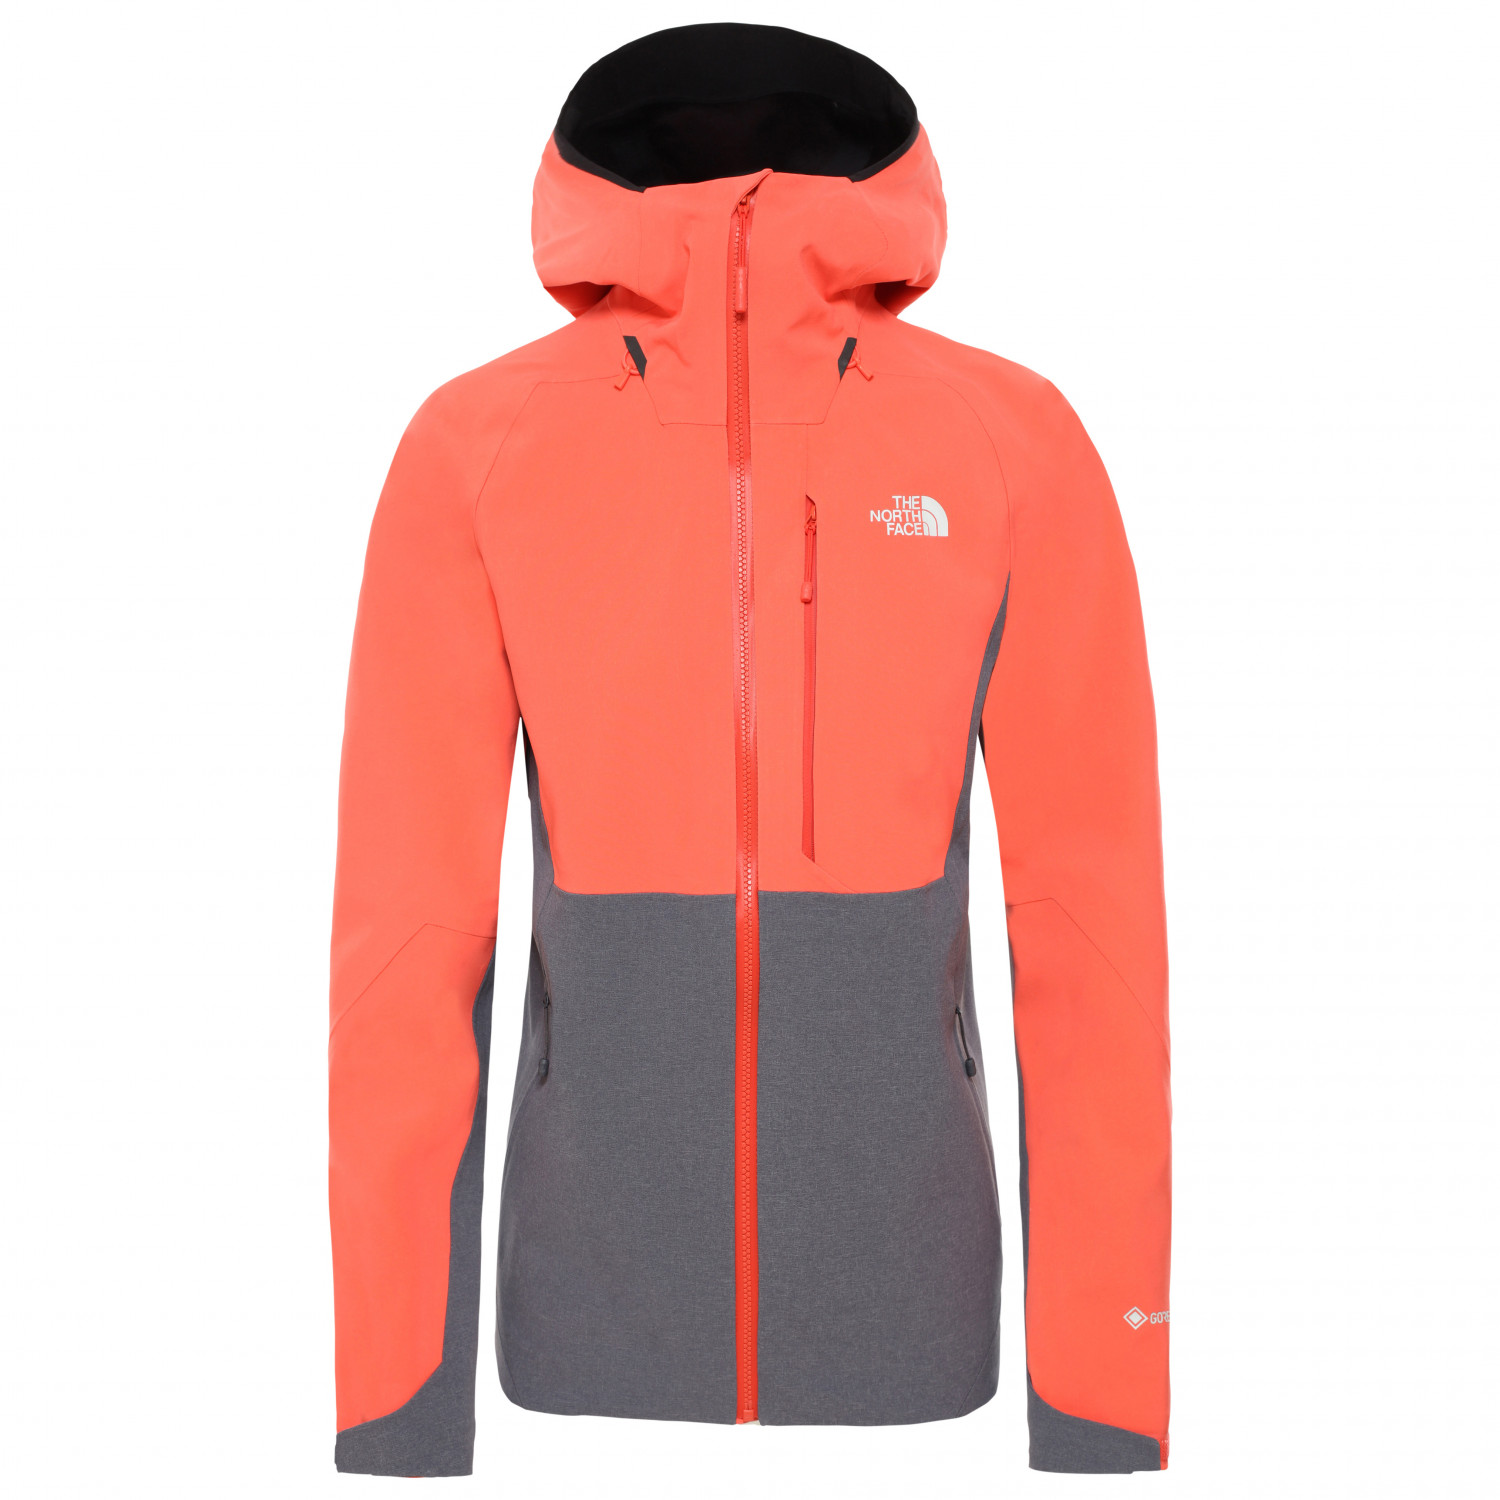 The 0 GreenXS GTX Jacket Apex jacket 2 Face Taupe North Women's Flex Waterproof New 7Ybf6gyv